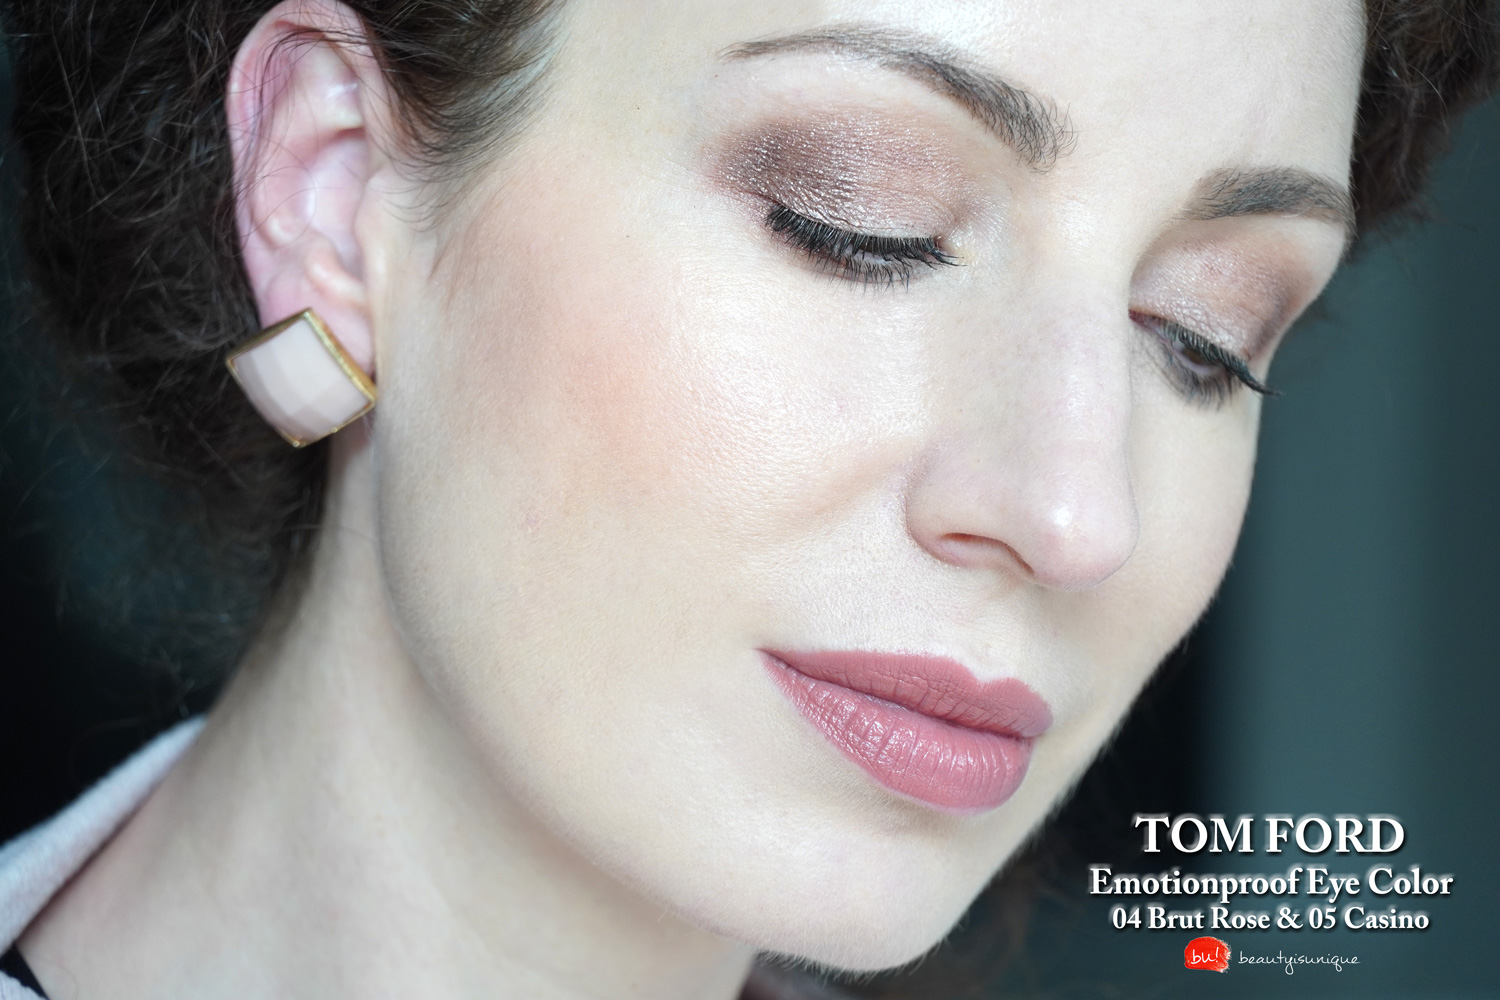 Tom-ford-emotionproof-eye-color-brut-rose-casino-swatches